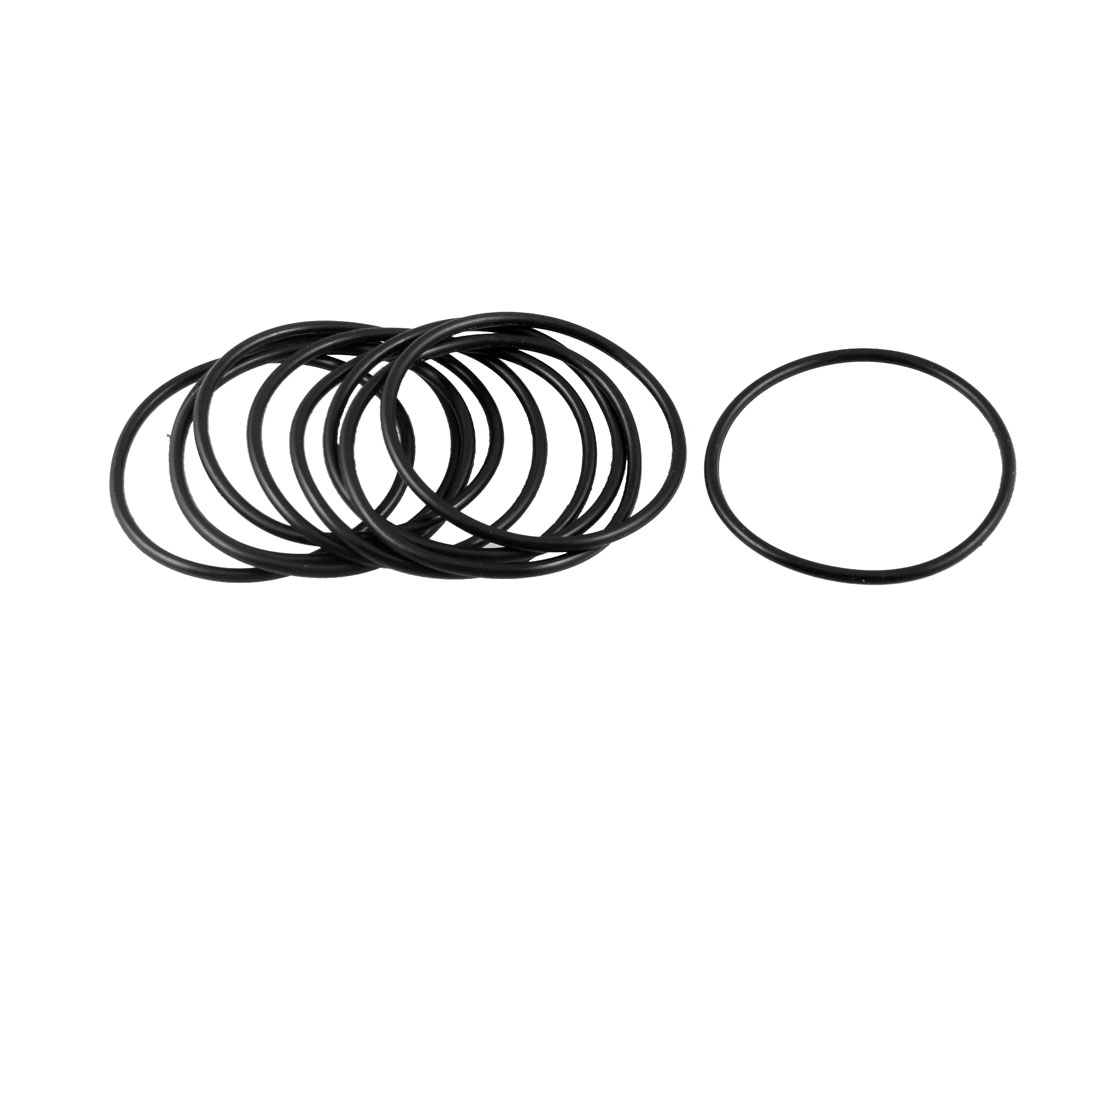 54mm x 2.65mm x 48.7mm Rubber Sealing Oil Filter O Rings Gaskets 10 Pcs